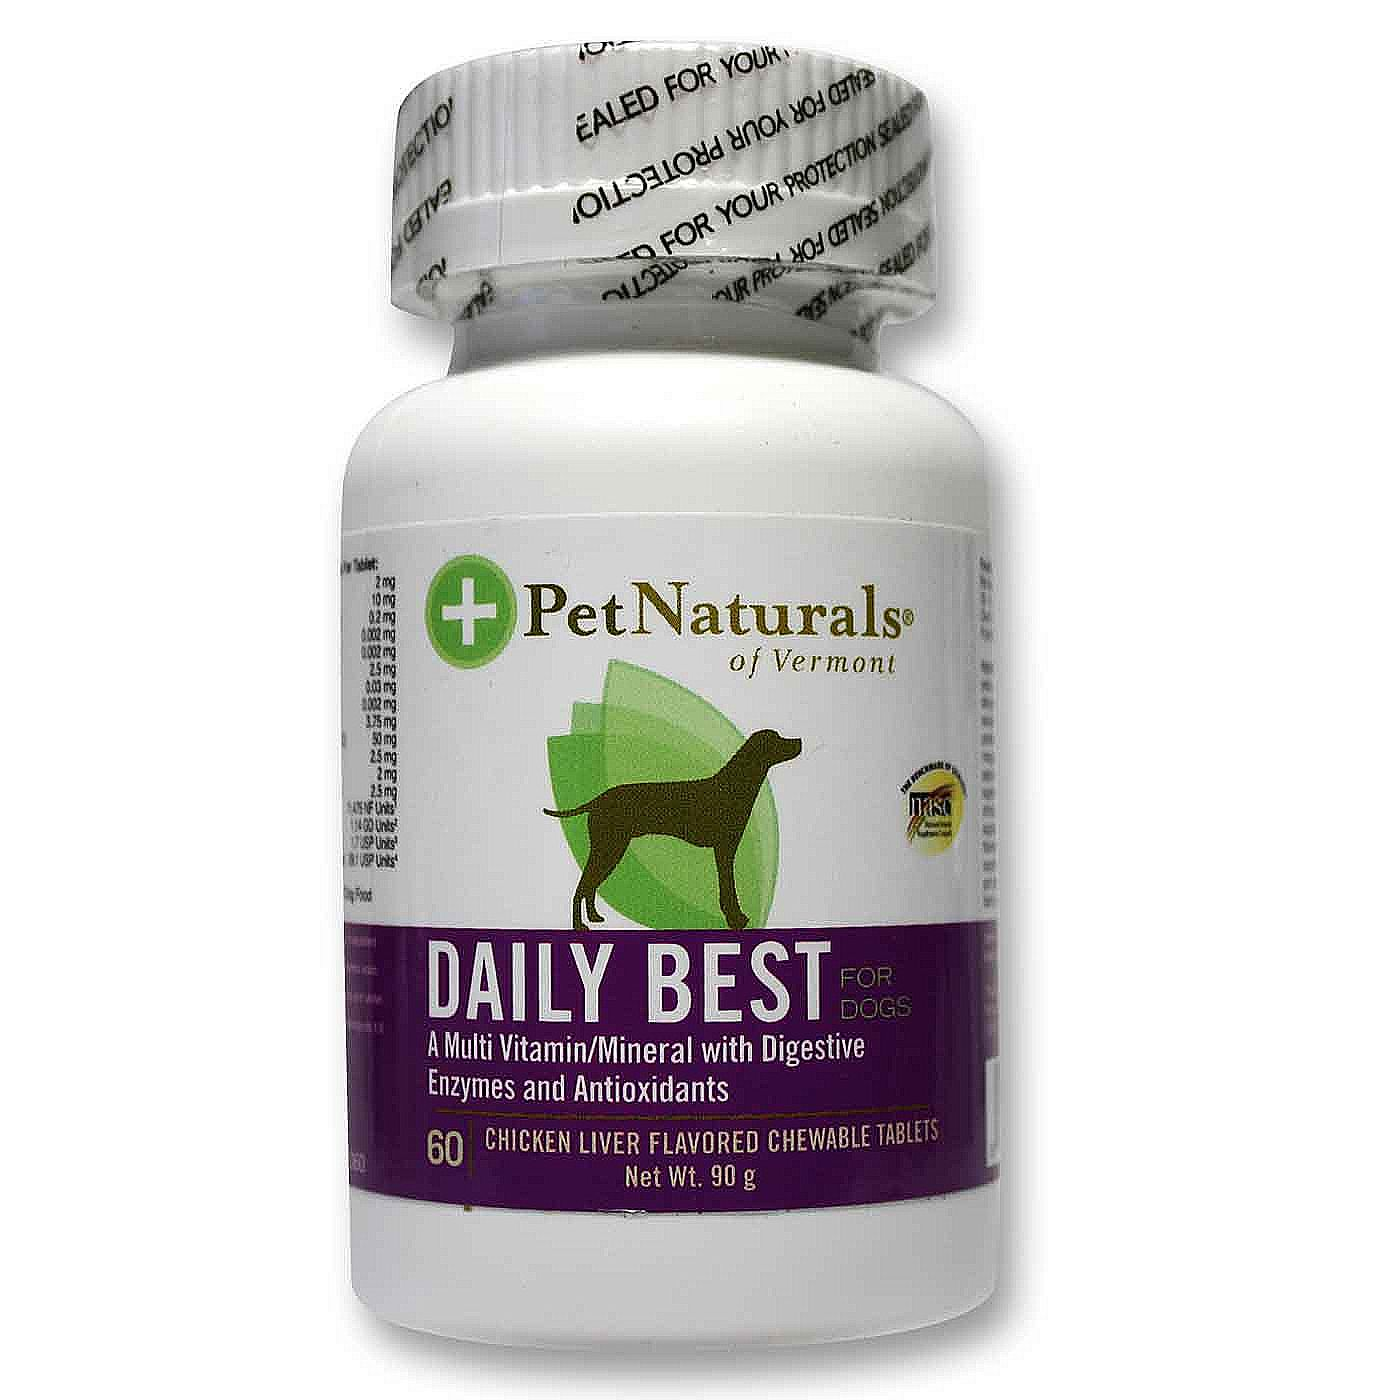 Pet Naturals Daily Best Cat Vitamins